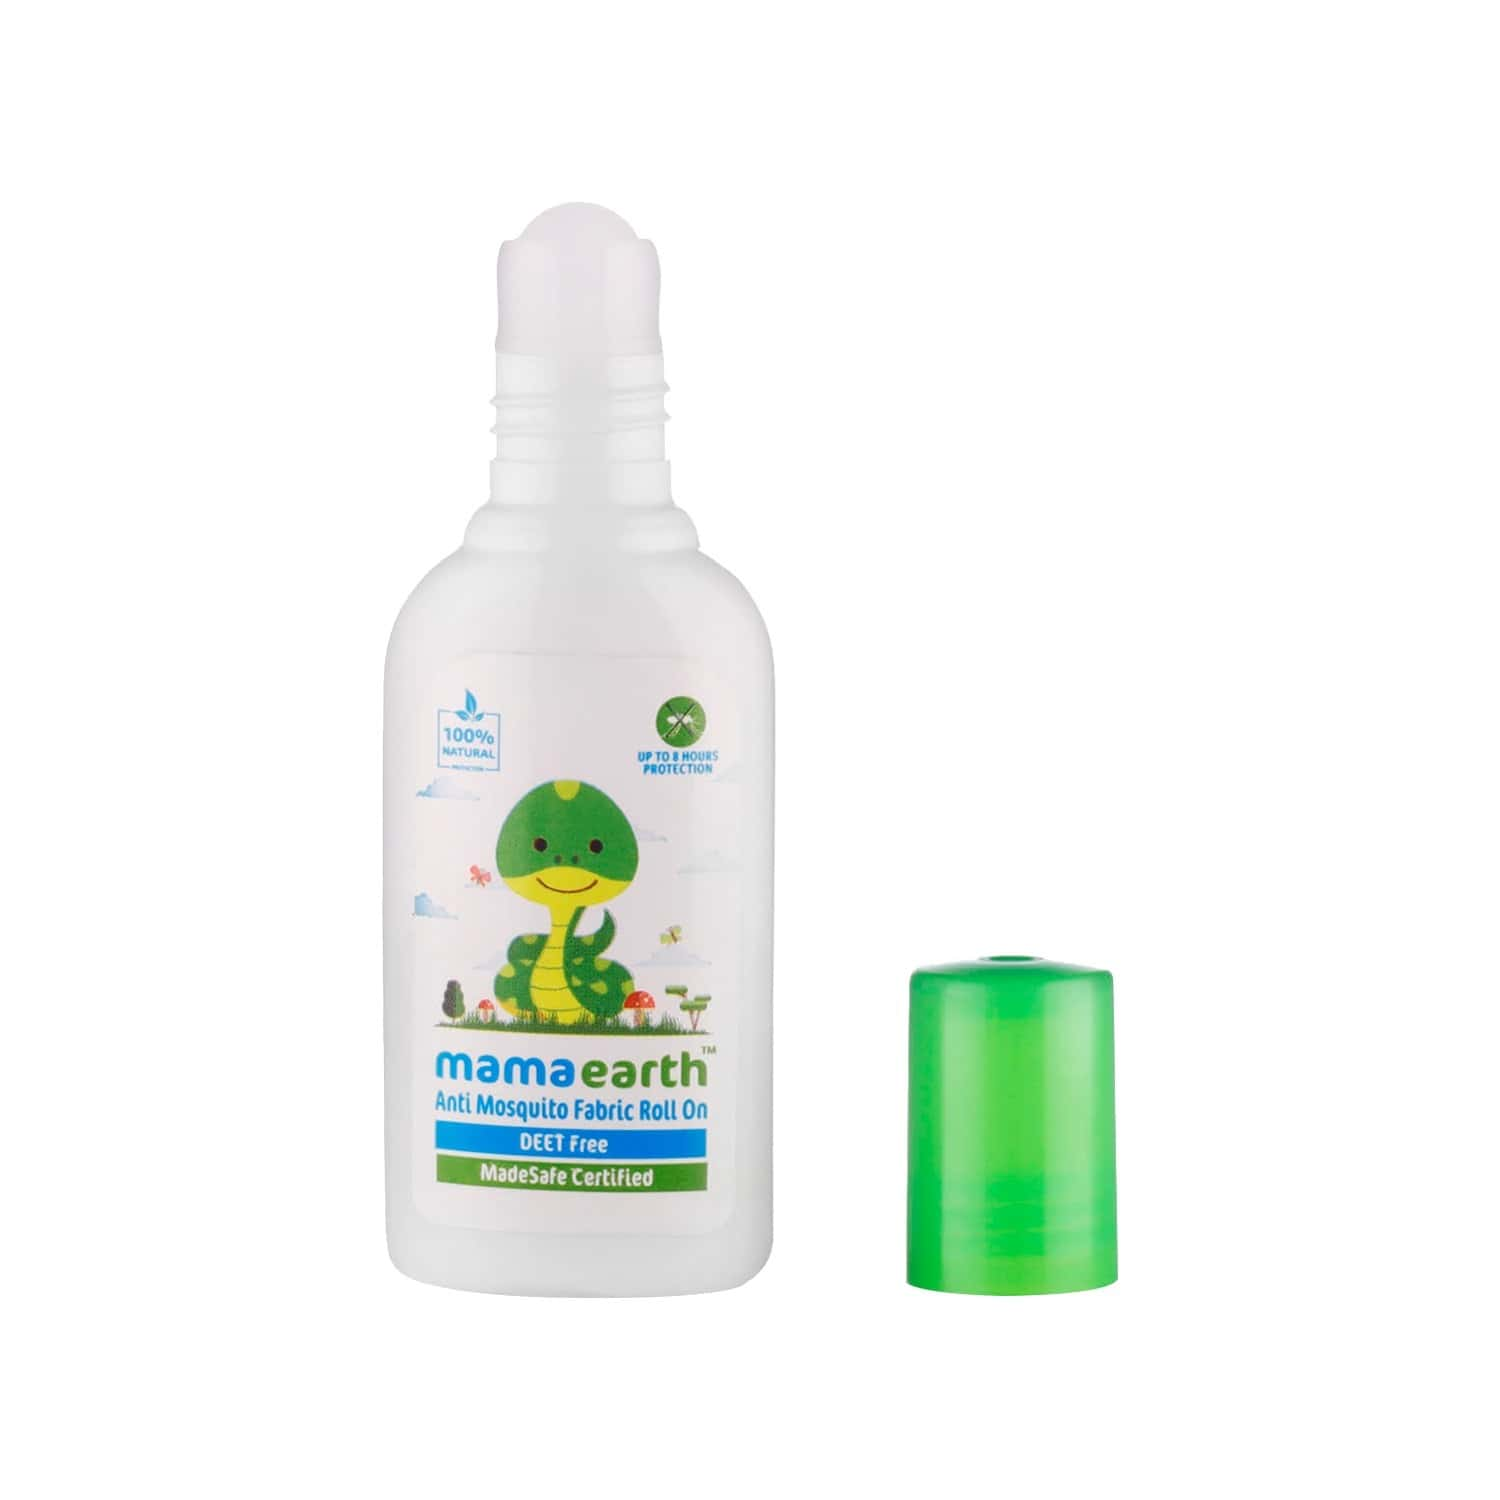 Mamaearth Anti Mosquito Roll-on Bottle Of 8 Ml